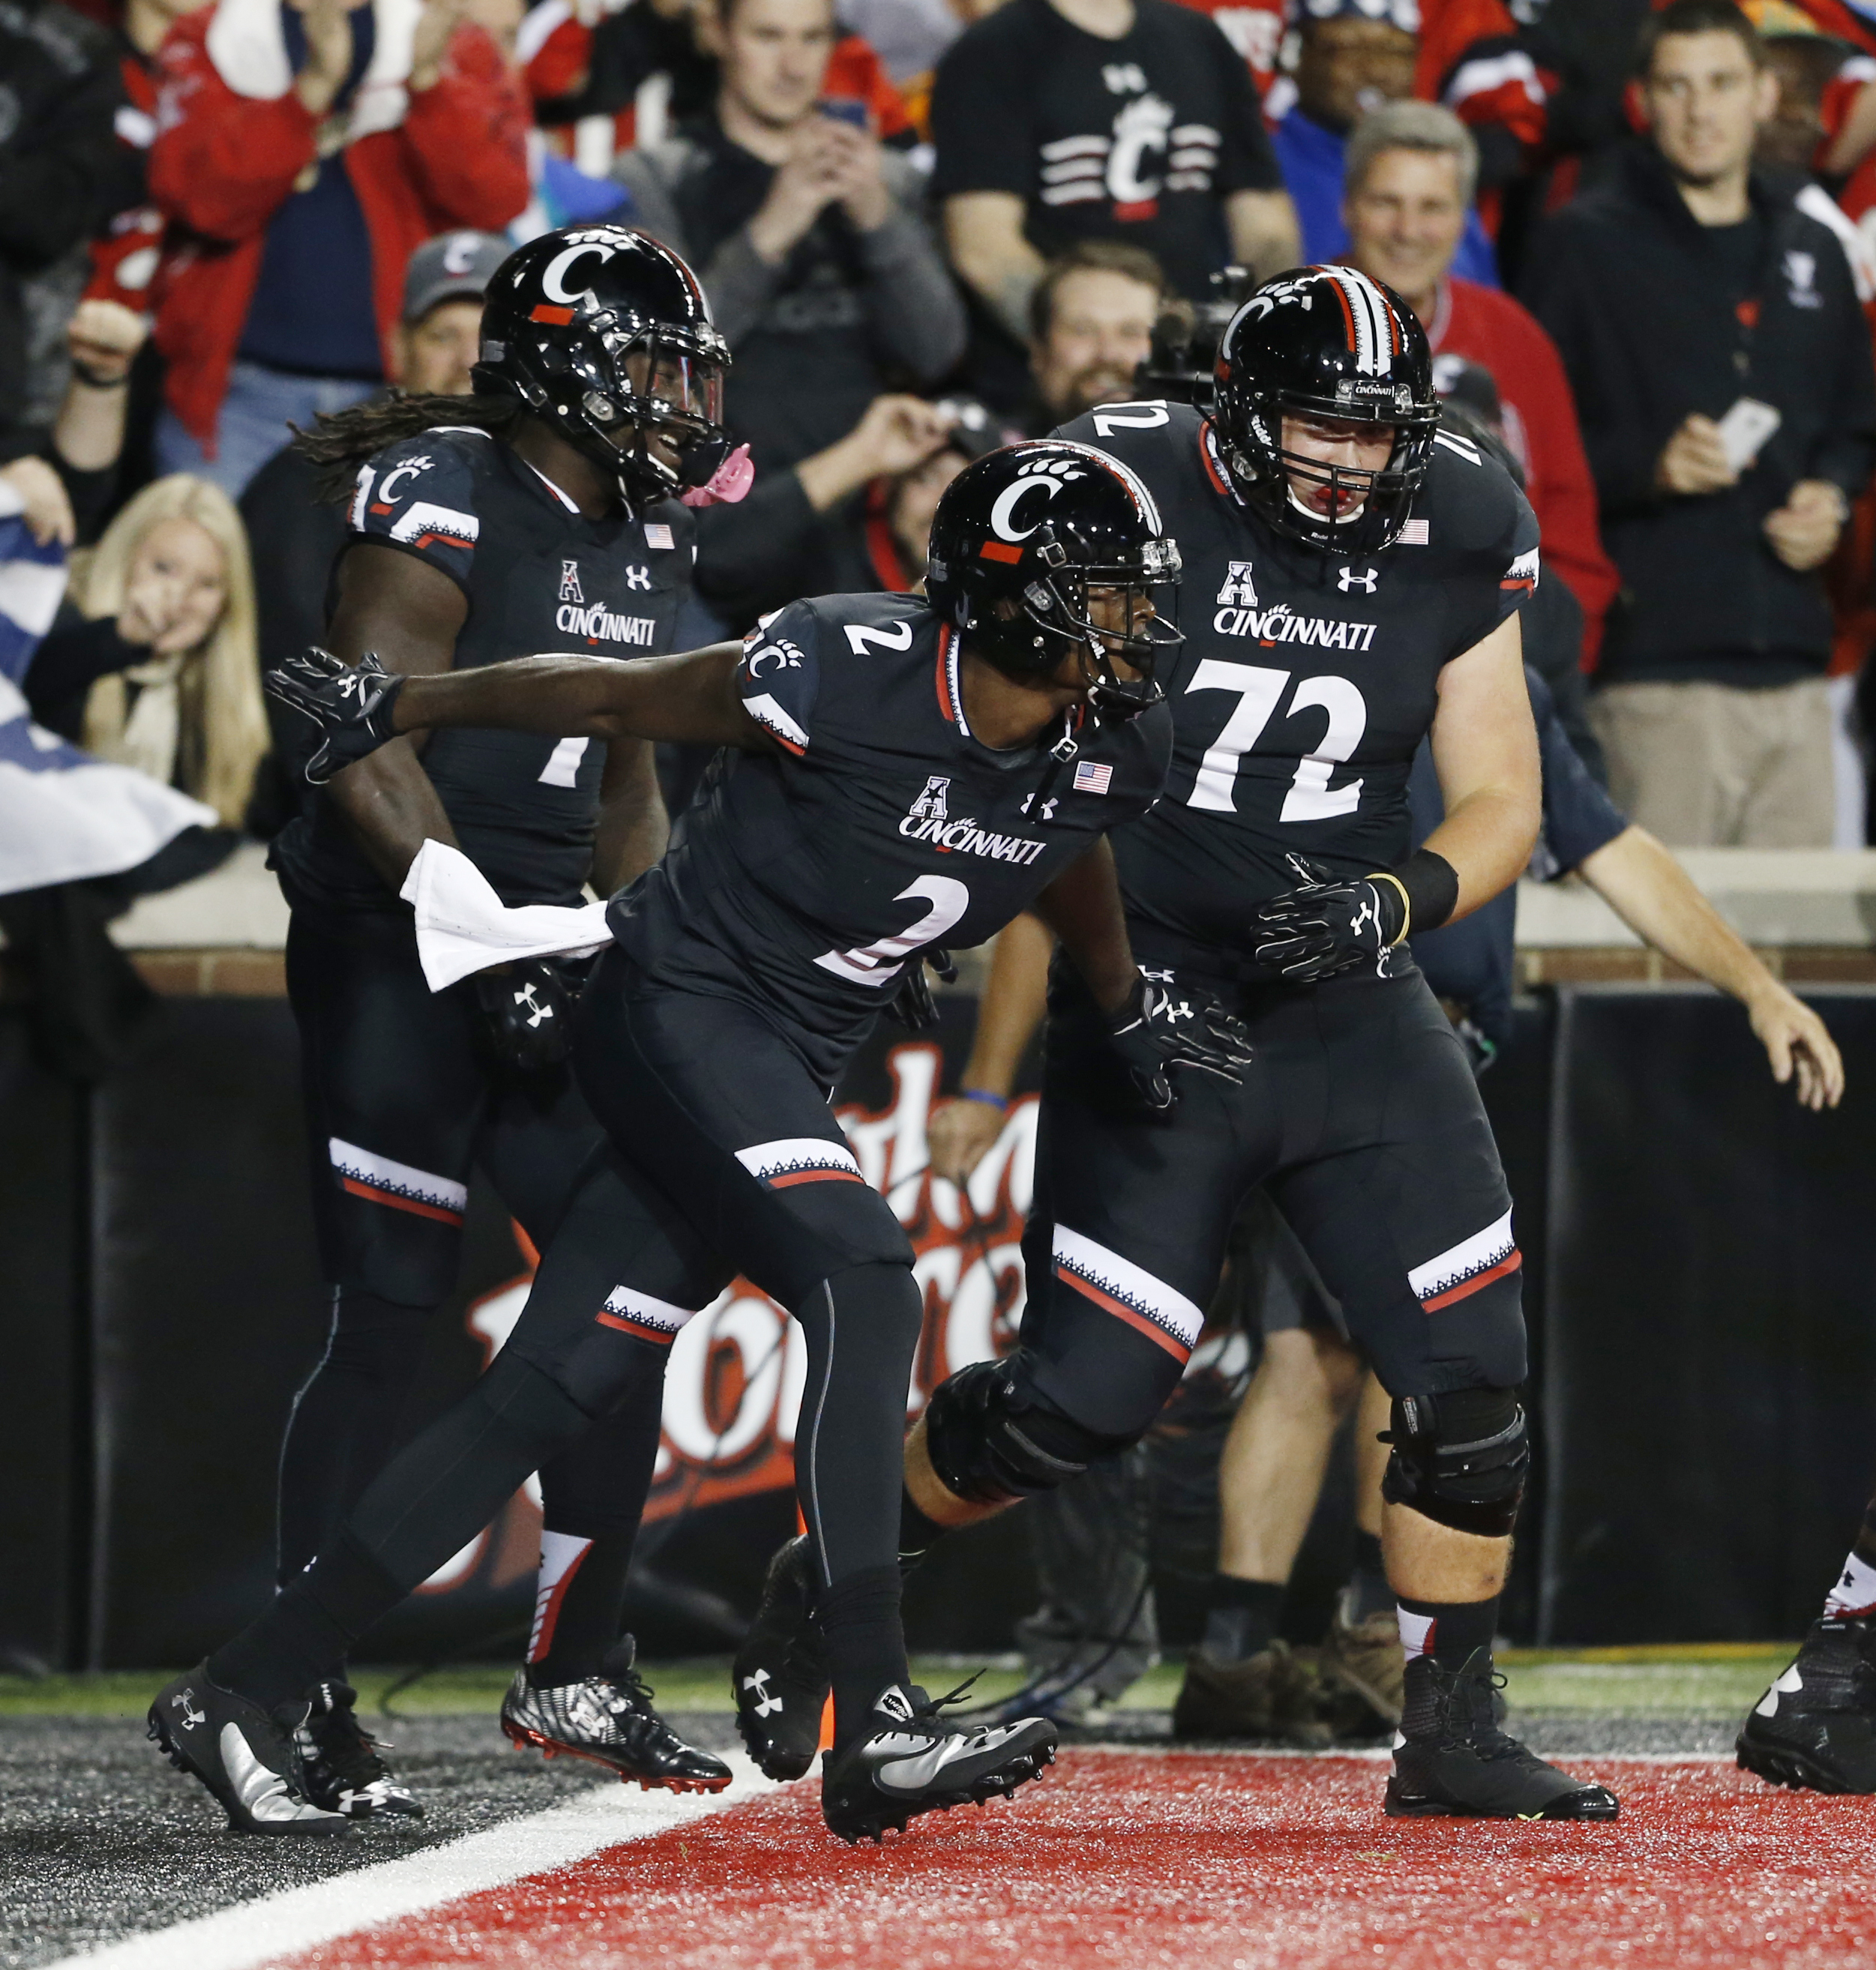 Cincinnati wide receiver Mekale McKay (2) celebrates a touchdown against Miami during the first half of an NCAA college football game, Thursday, Oct. 1, 2015, in Cincinnati. (AP Photo/Gary Landers)